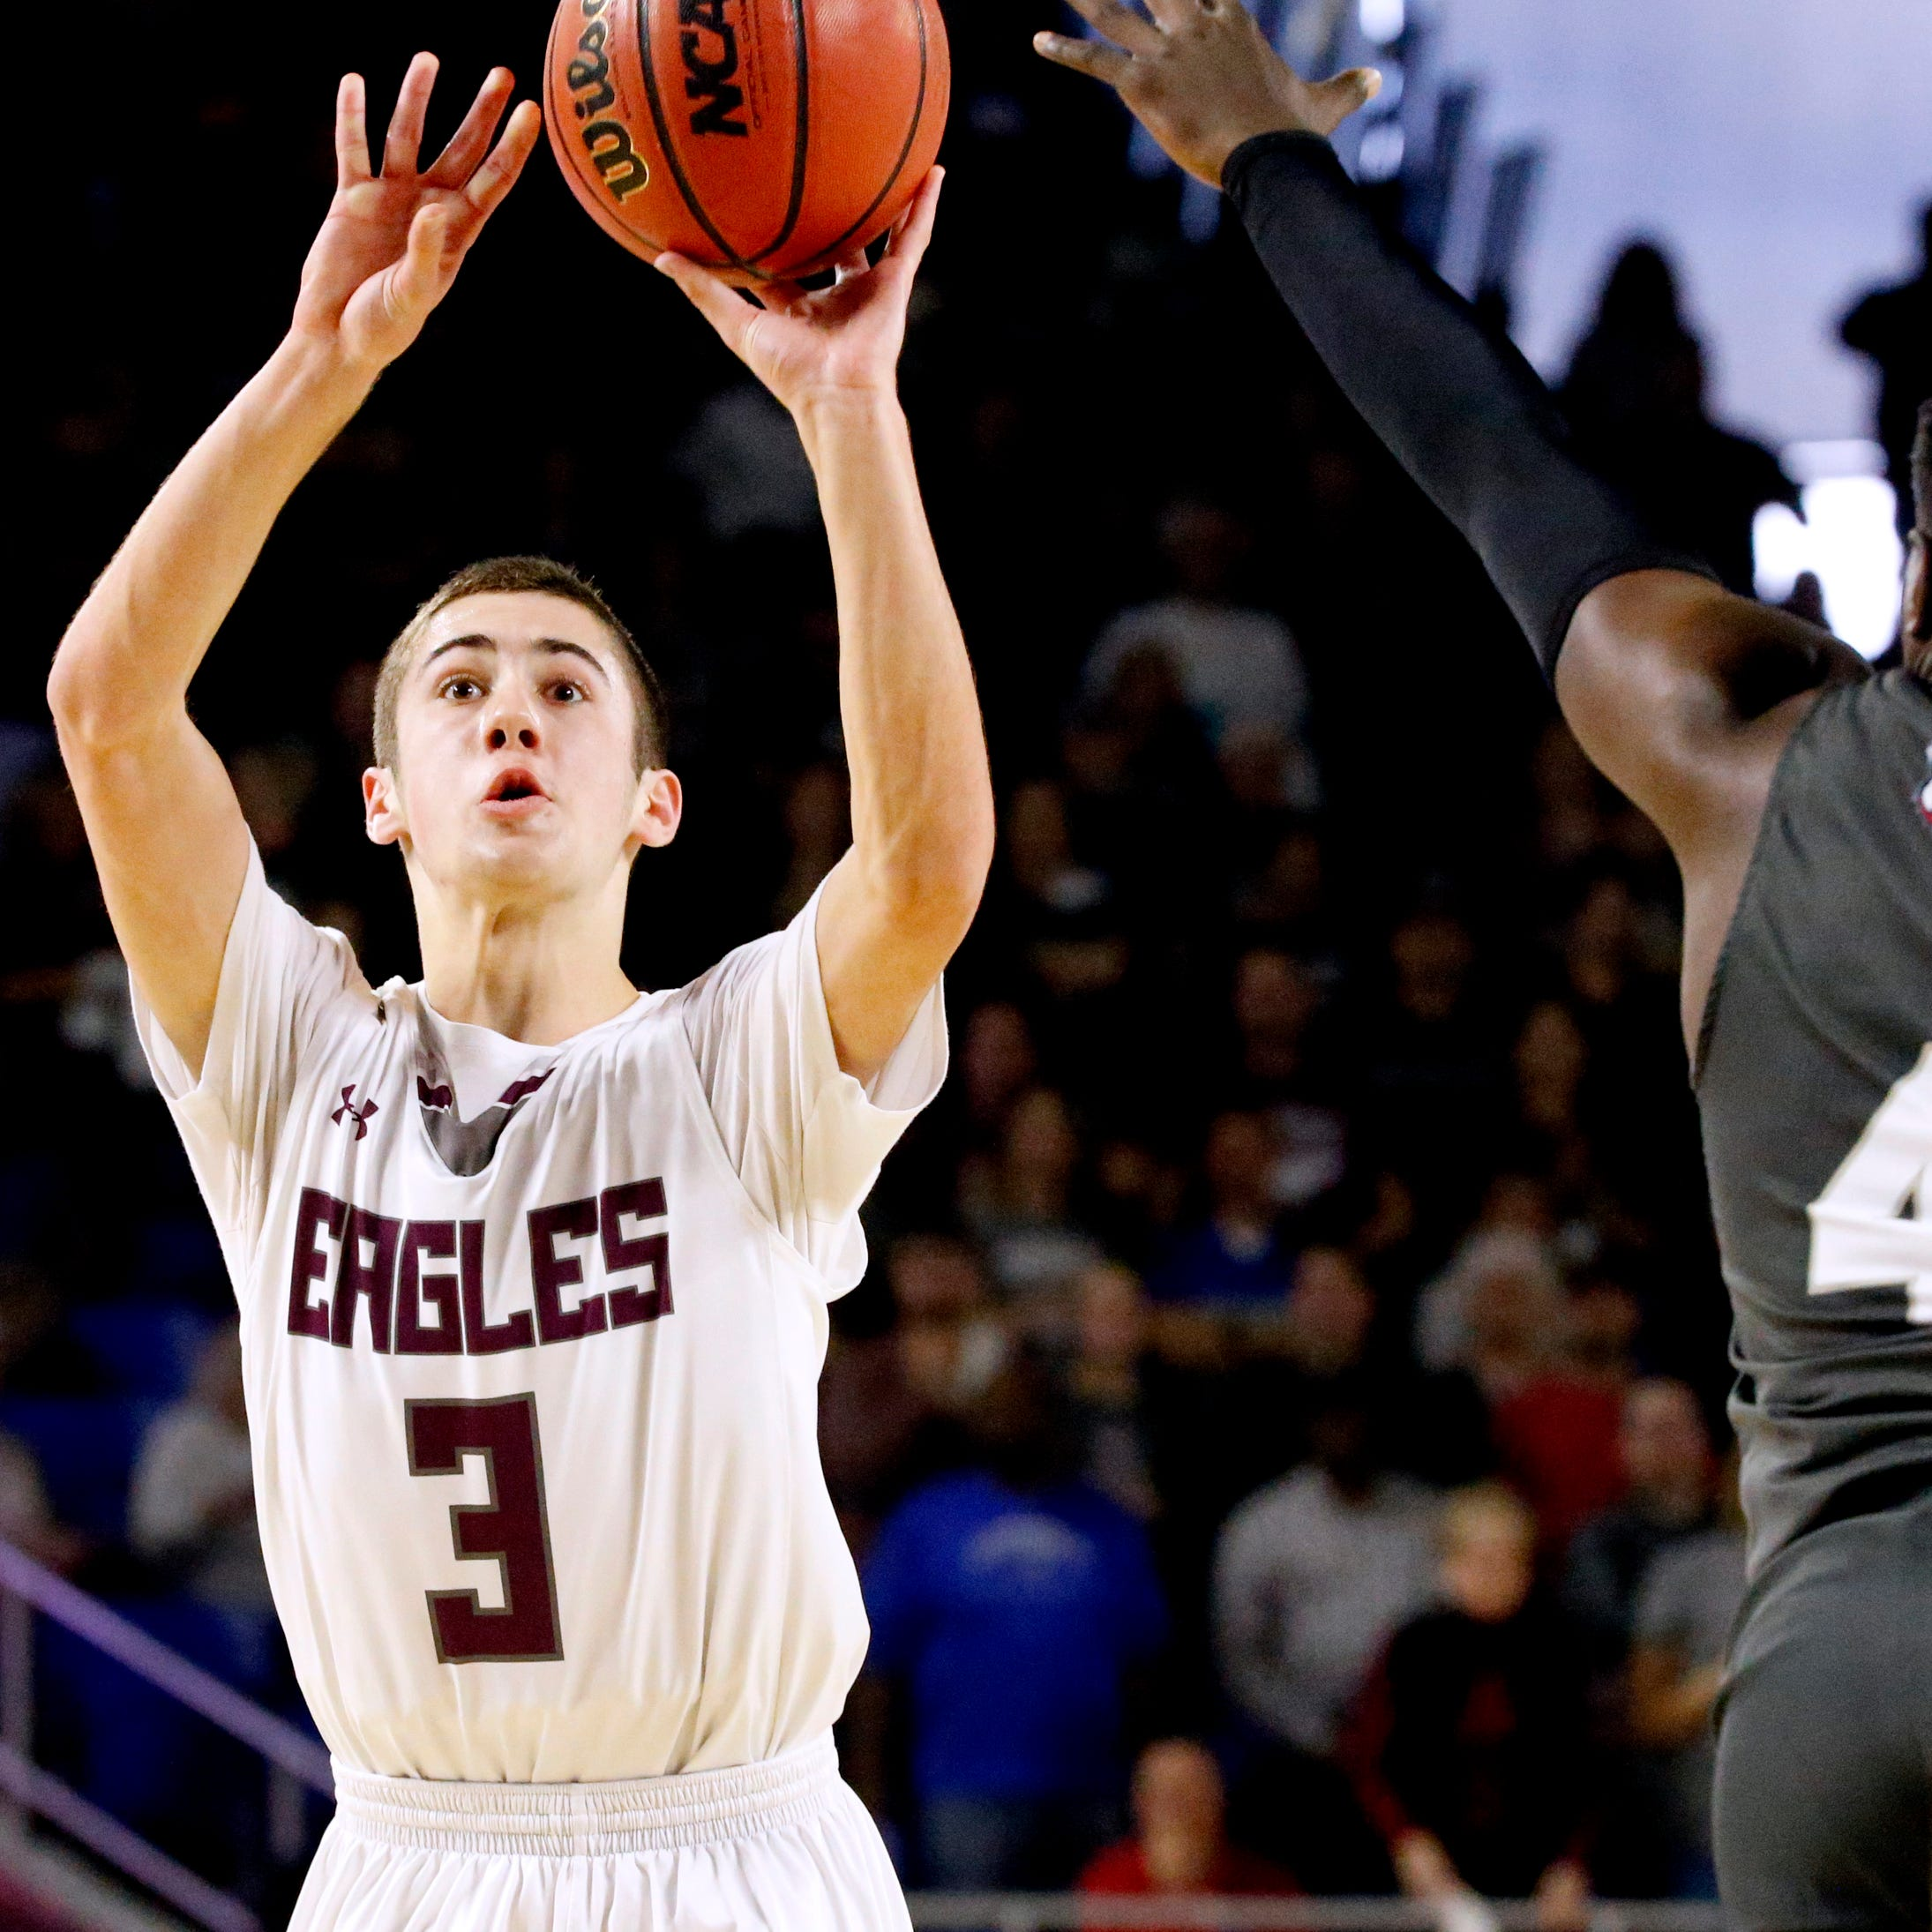 Eagleville's Ryley McClaran tops DNJ's 2018-19 all-area boys basketball team